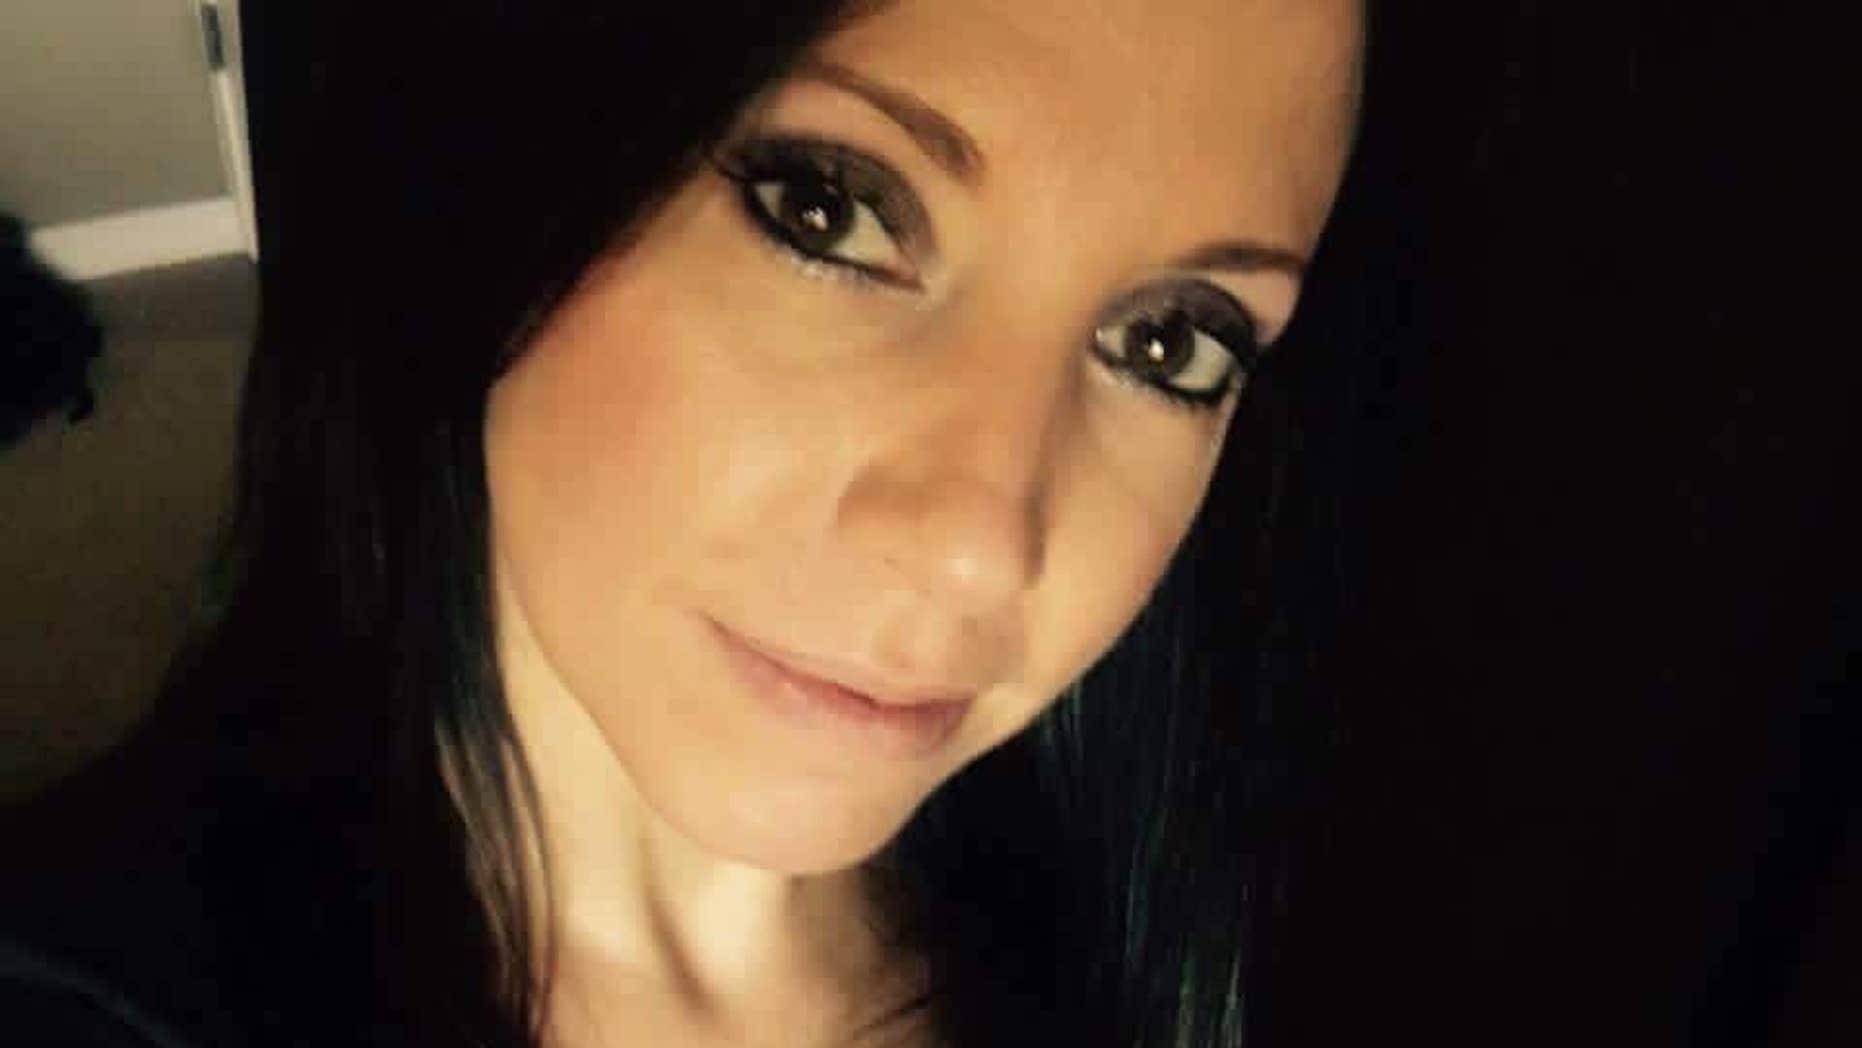 Police believe Ingrid Lyne, a Seattle-area mother of three, was the victim of homicide after dismembered remains were found a day after her disappearance.